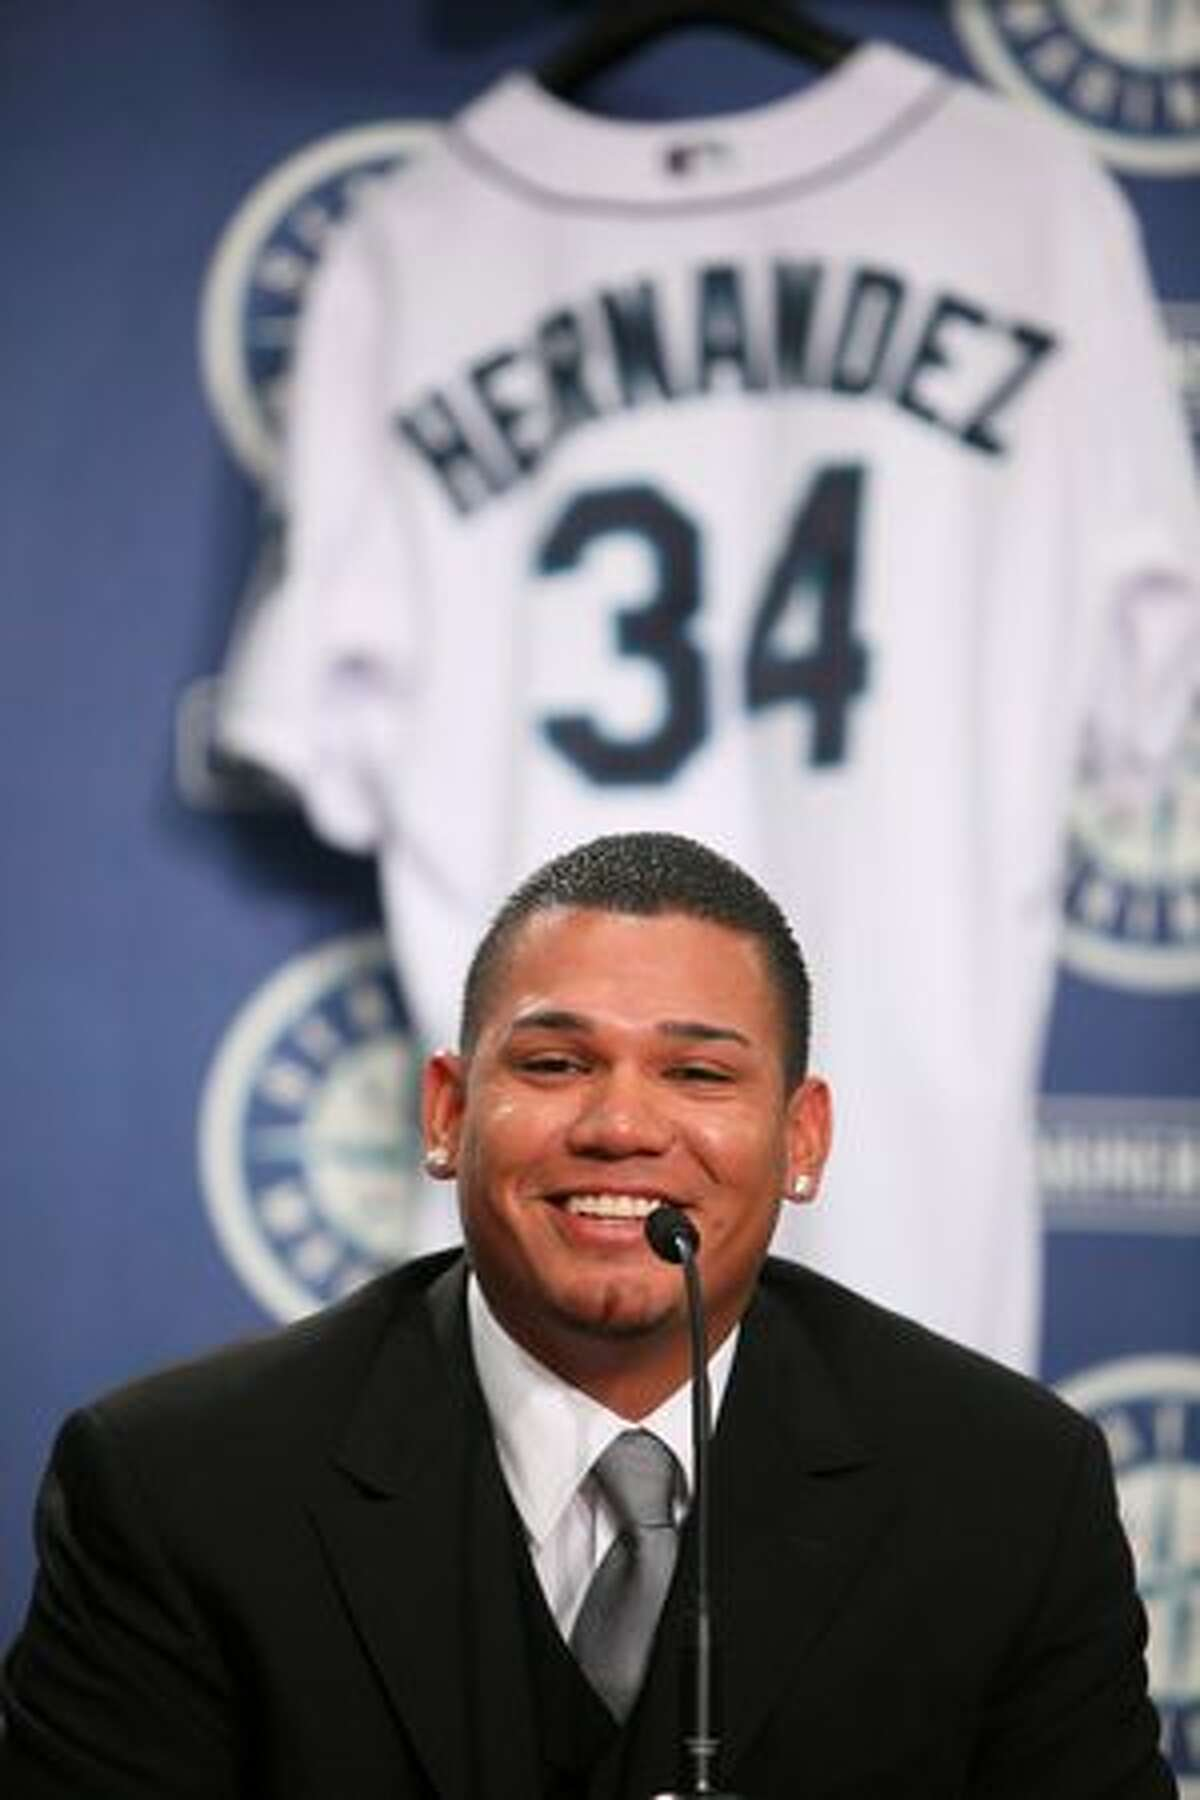 Pitcher Felix Hernandez announces during a press conference Thursday at Safeco Field that he is staying with the Mariners for five more years.